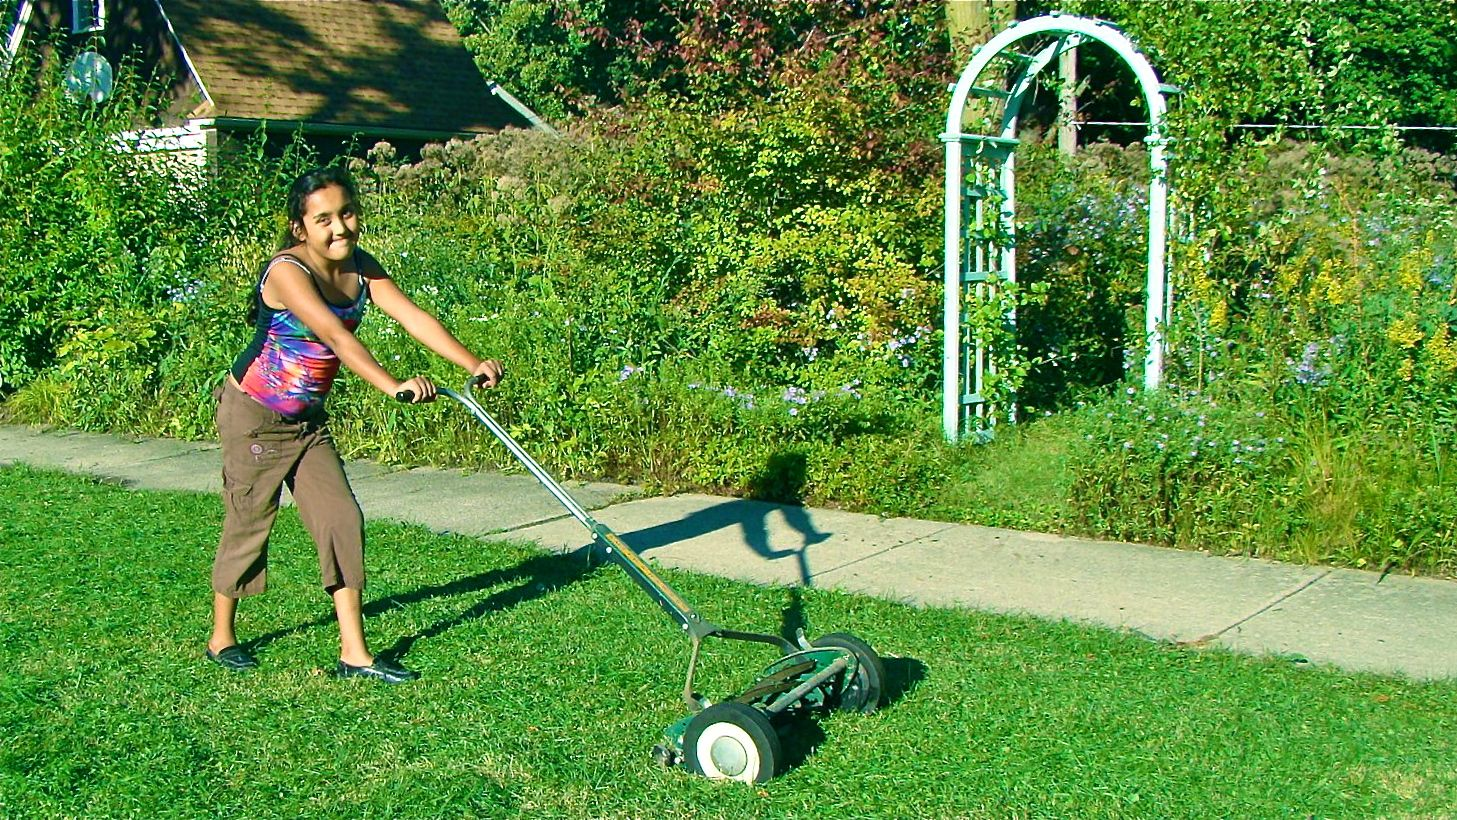 Have you ever used a non-motorized lawn mower? - Page 2 - Lawn